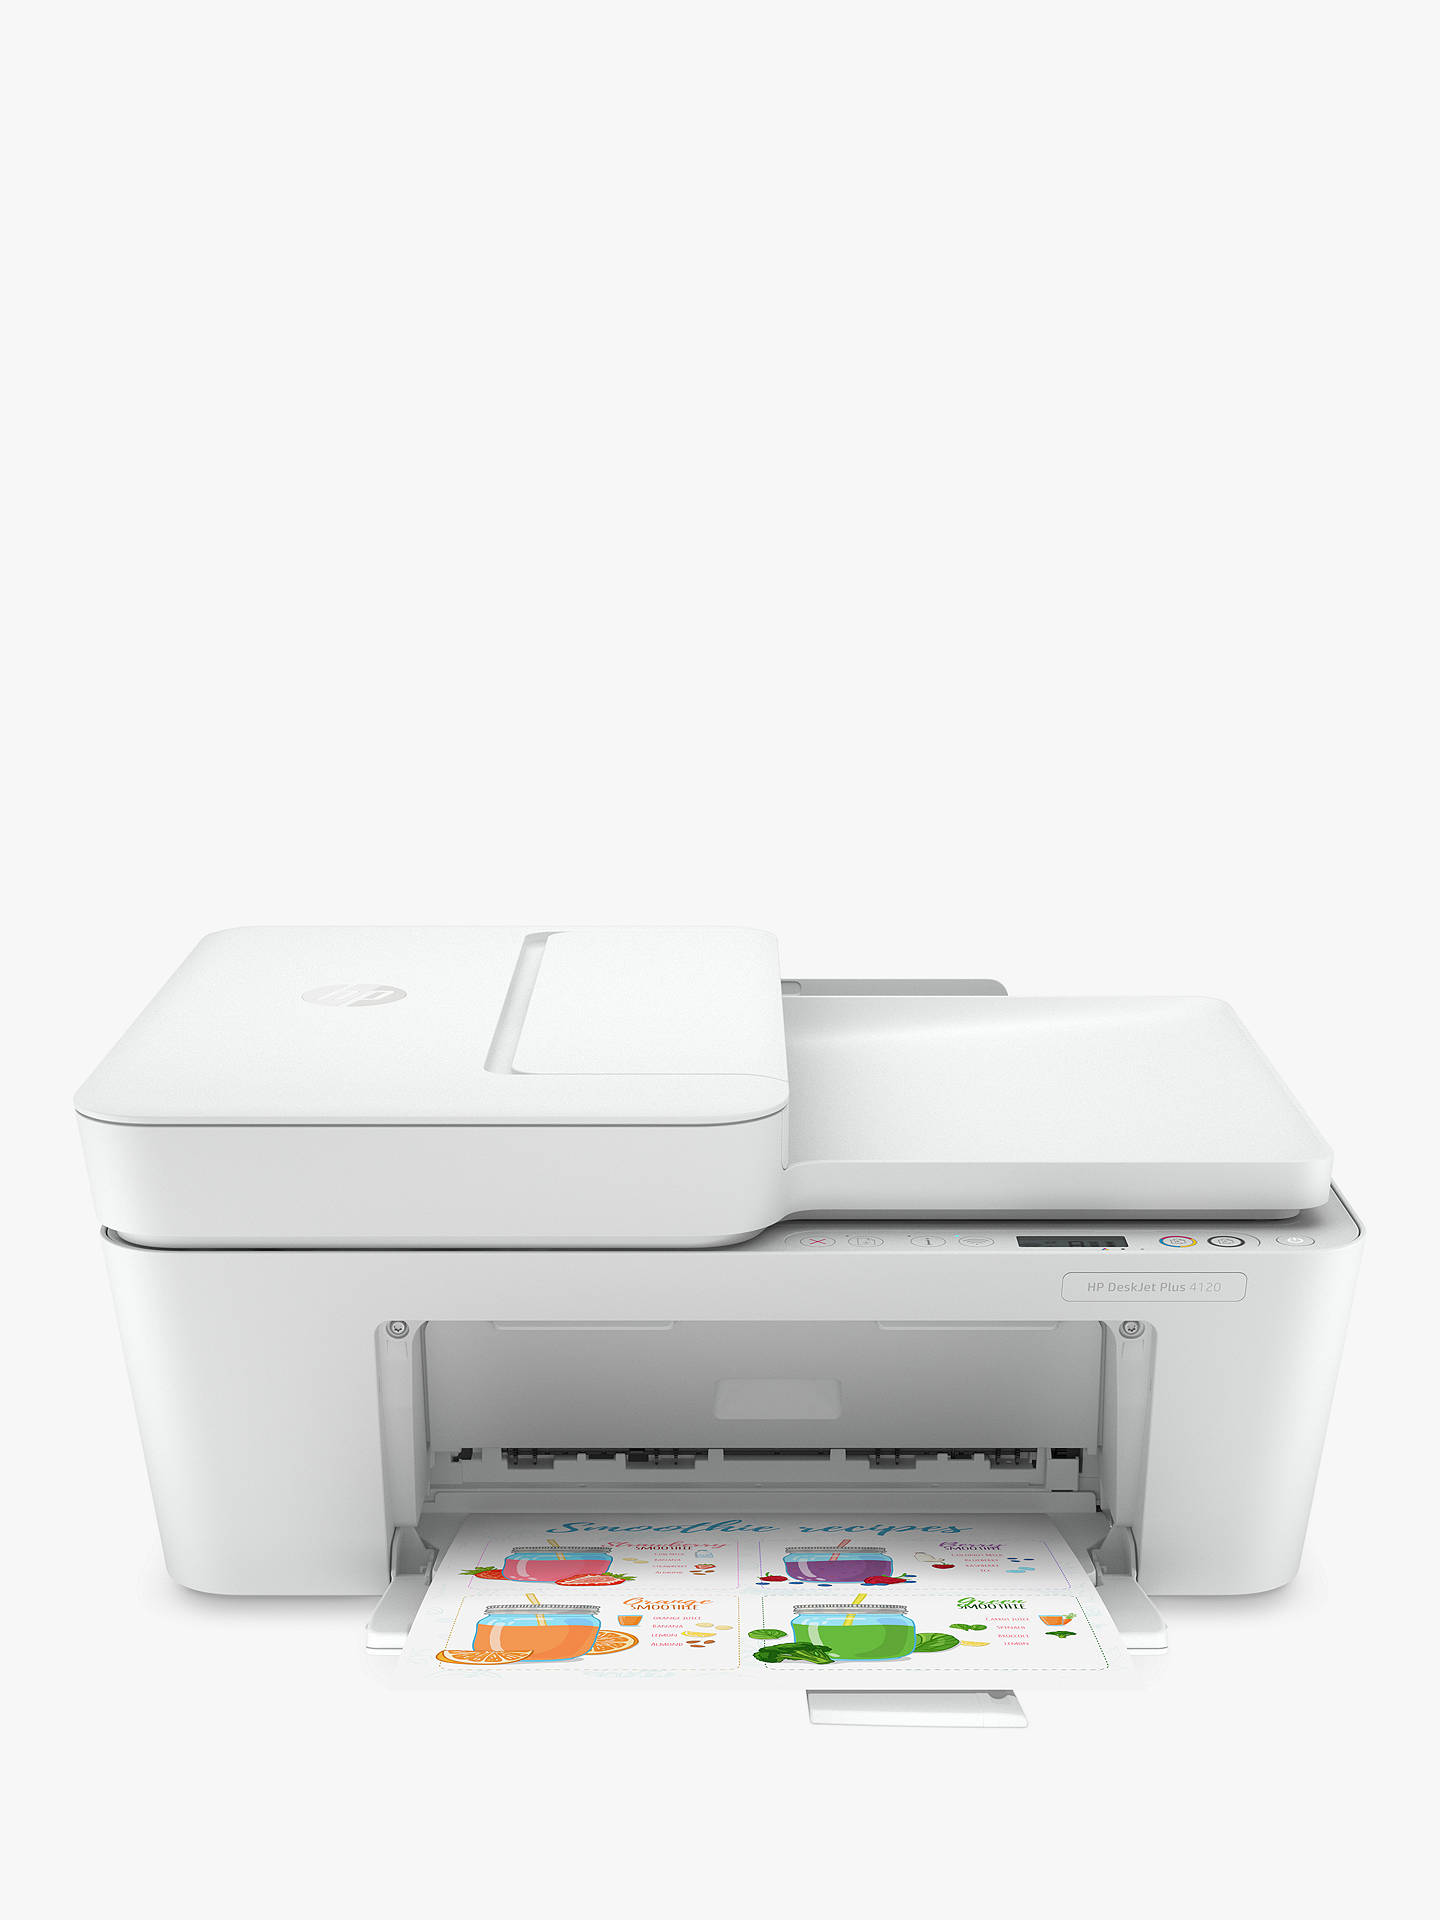 Buy HP Deskjet Plus 4120 All-In-One Wireless Printer, HP Instant Ink Compatible with 3 Months Trial, White Online at johnlewis.com